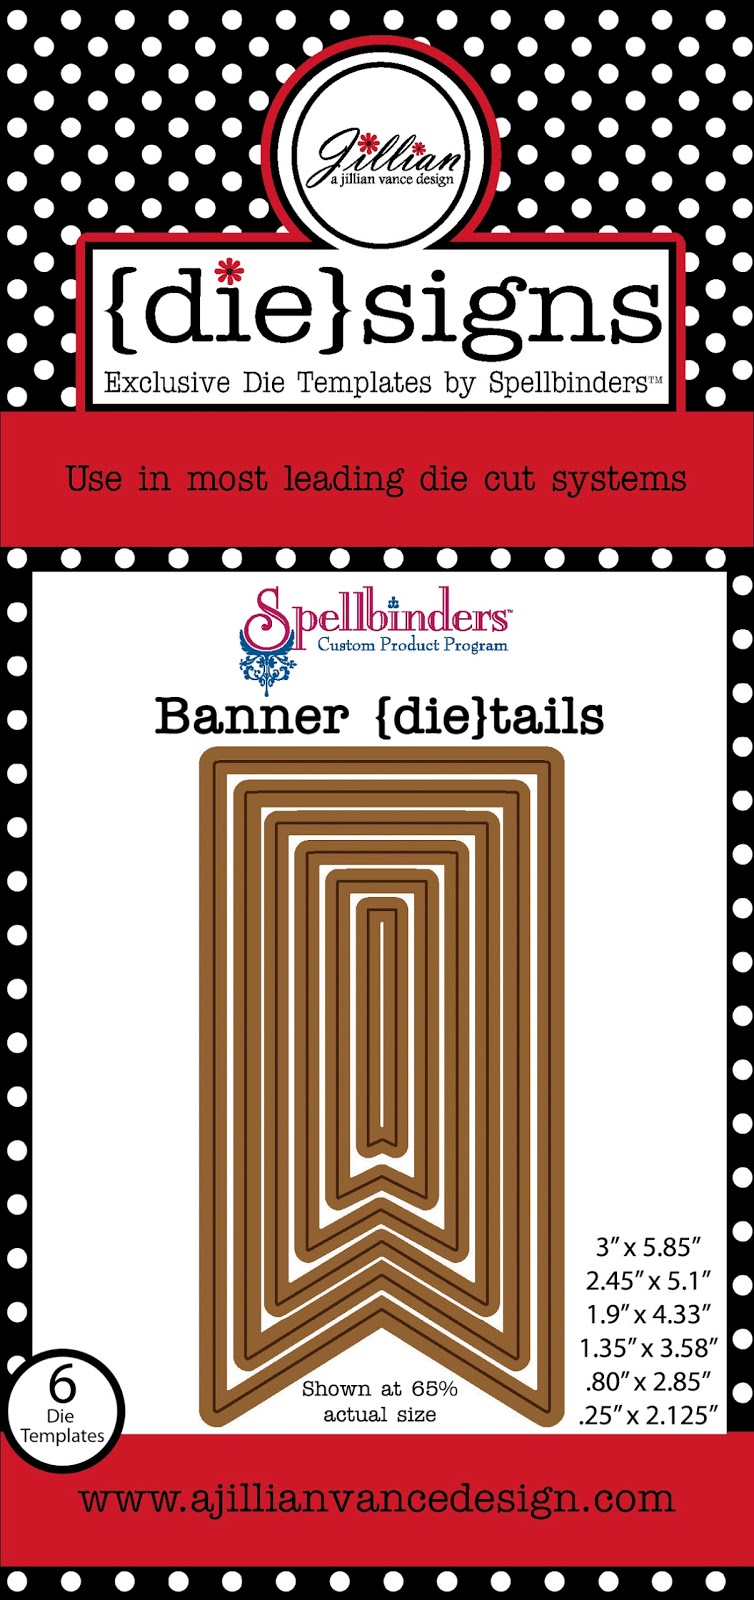 http://stores.ajillianvancedesign.com/banner-die-tails-nested-die-set/